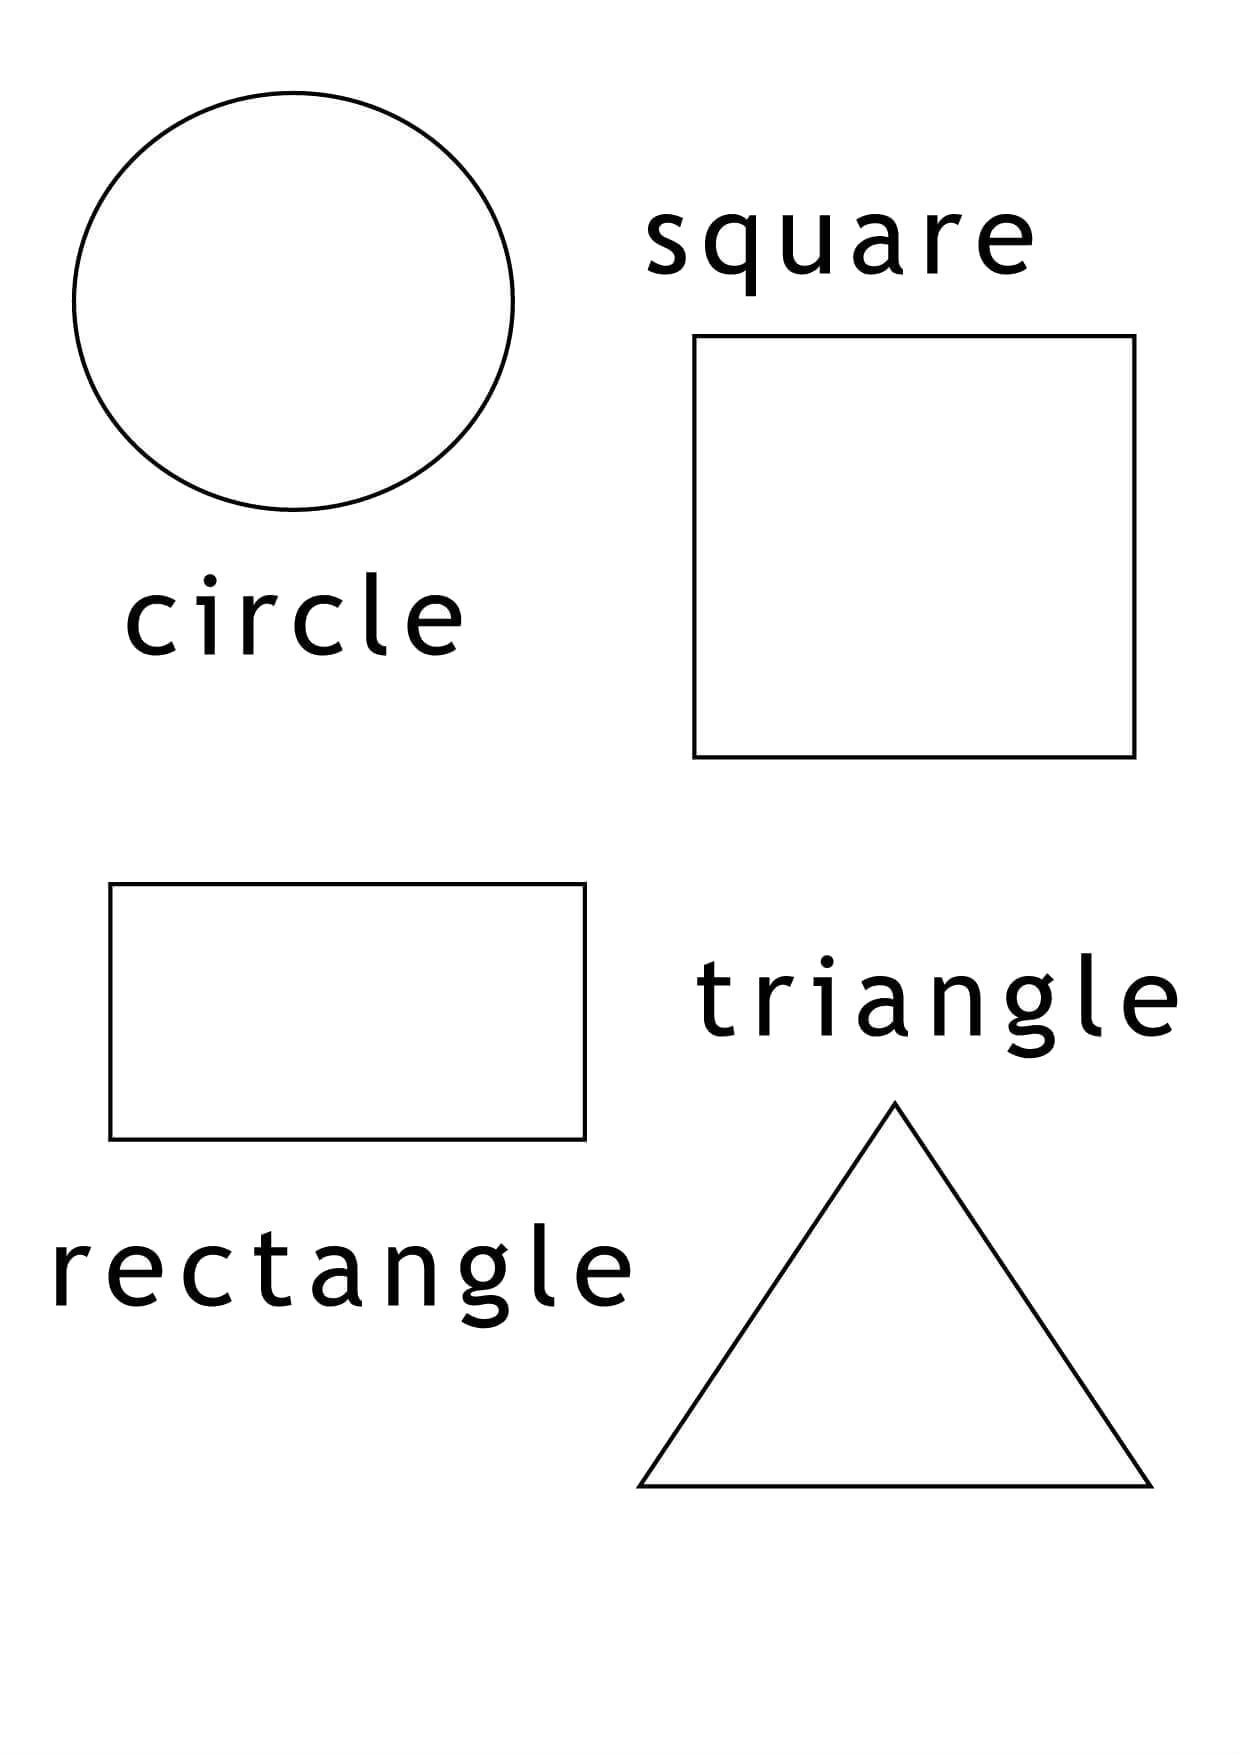 Rectangle Shapes And Others Coloring Pages For Kids Ecg